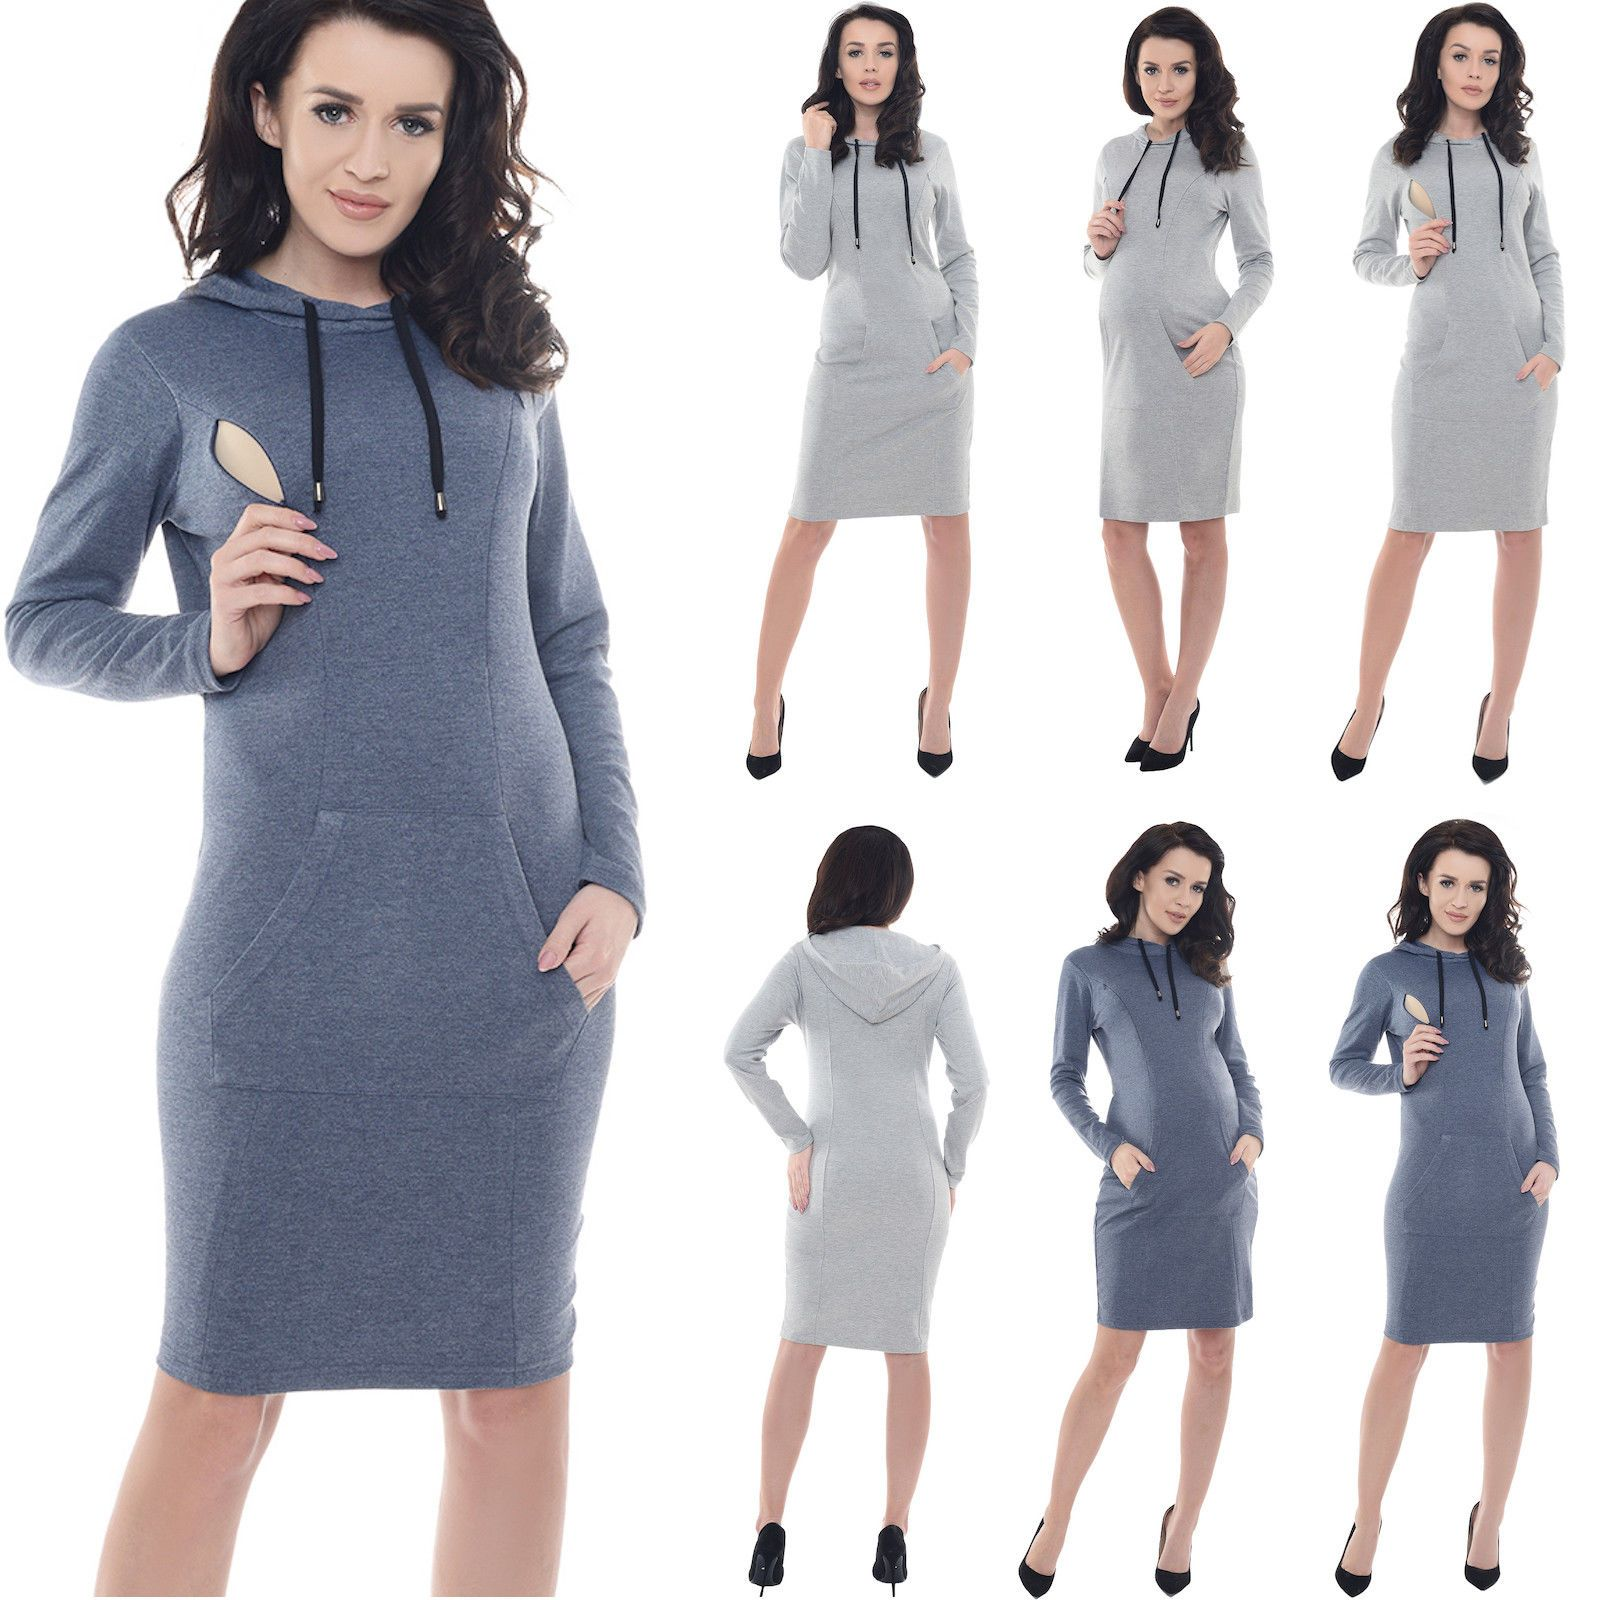 Purpless Maternity Pregnancy And Nursing Hooded Bodycon Dress With Pocket  B6211 ce2b8770389